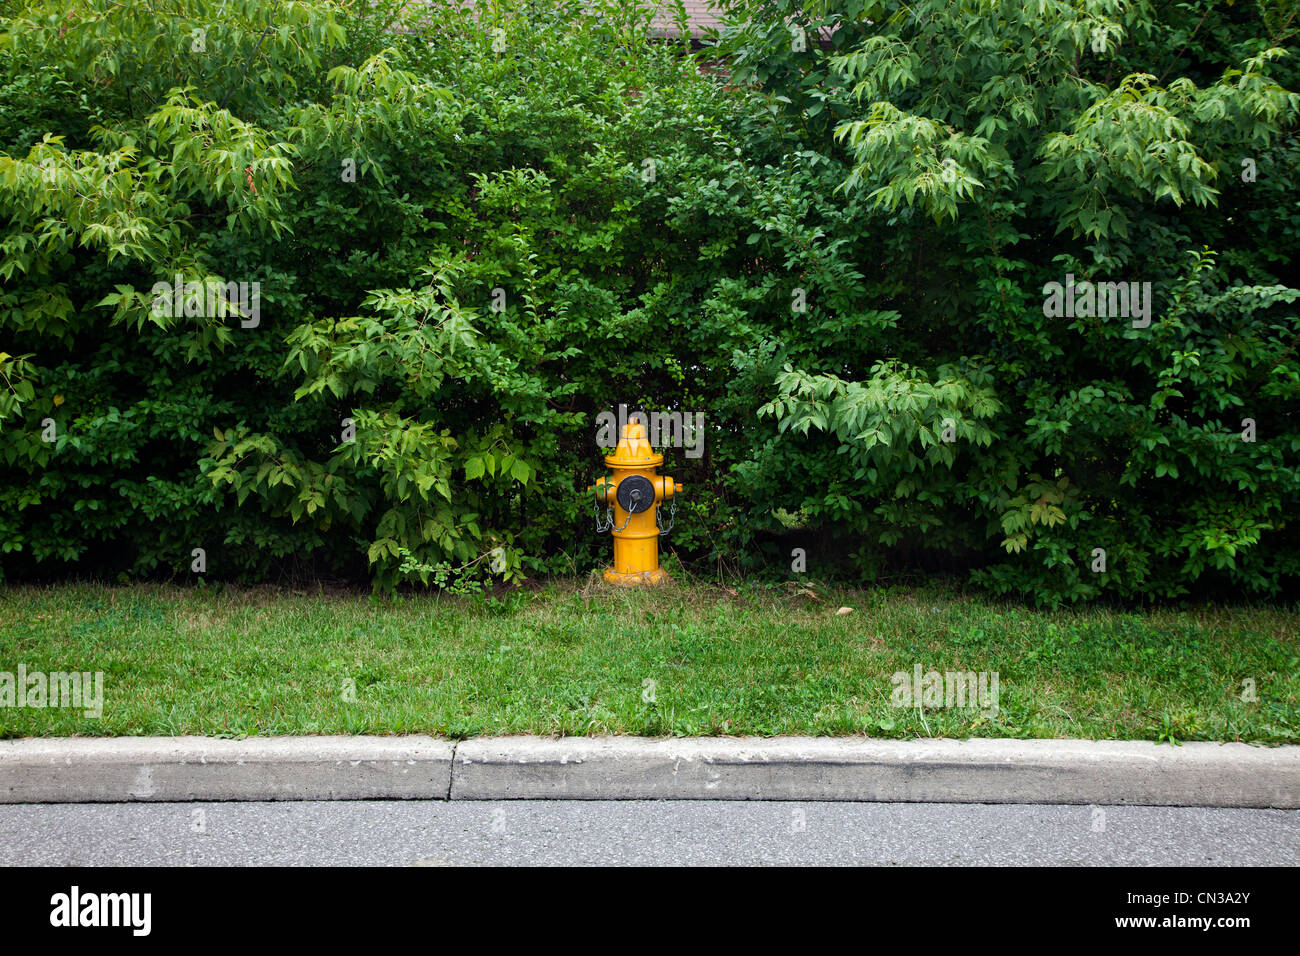 Fire hydrant on verge - Stock Image